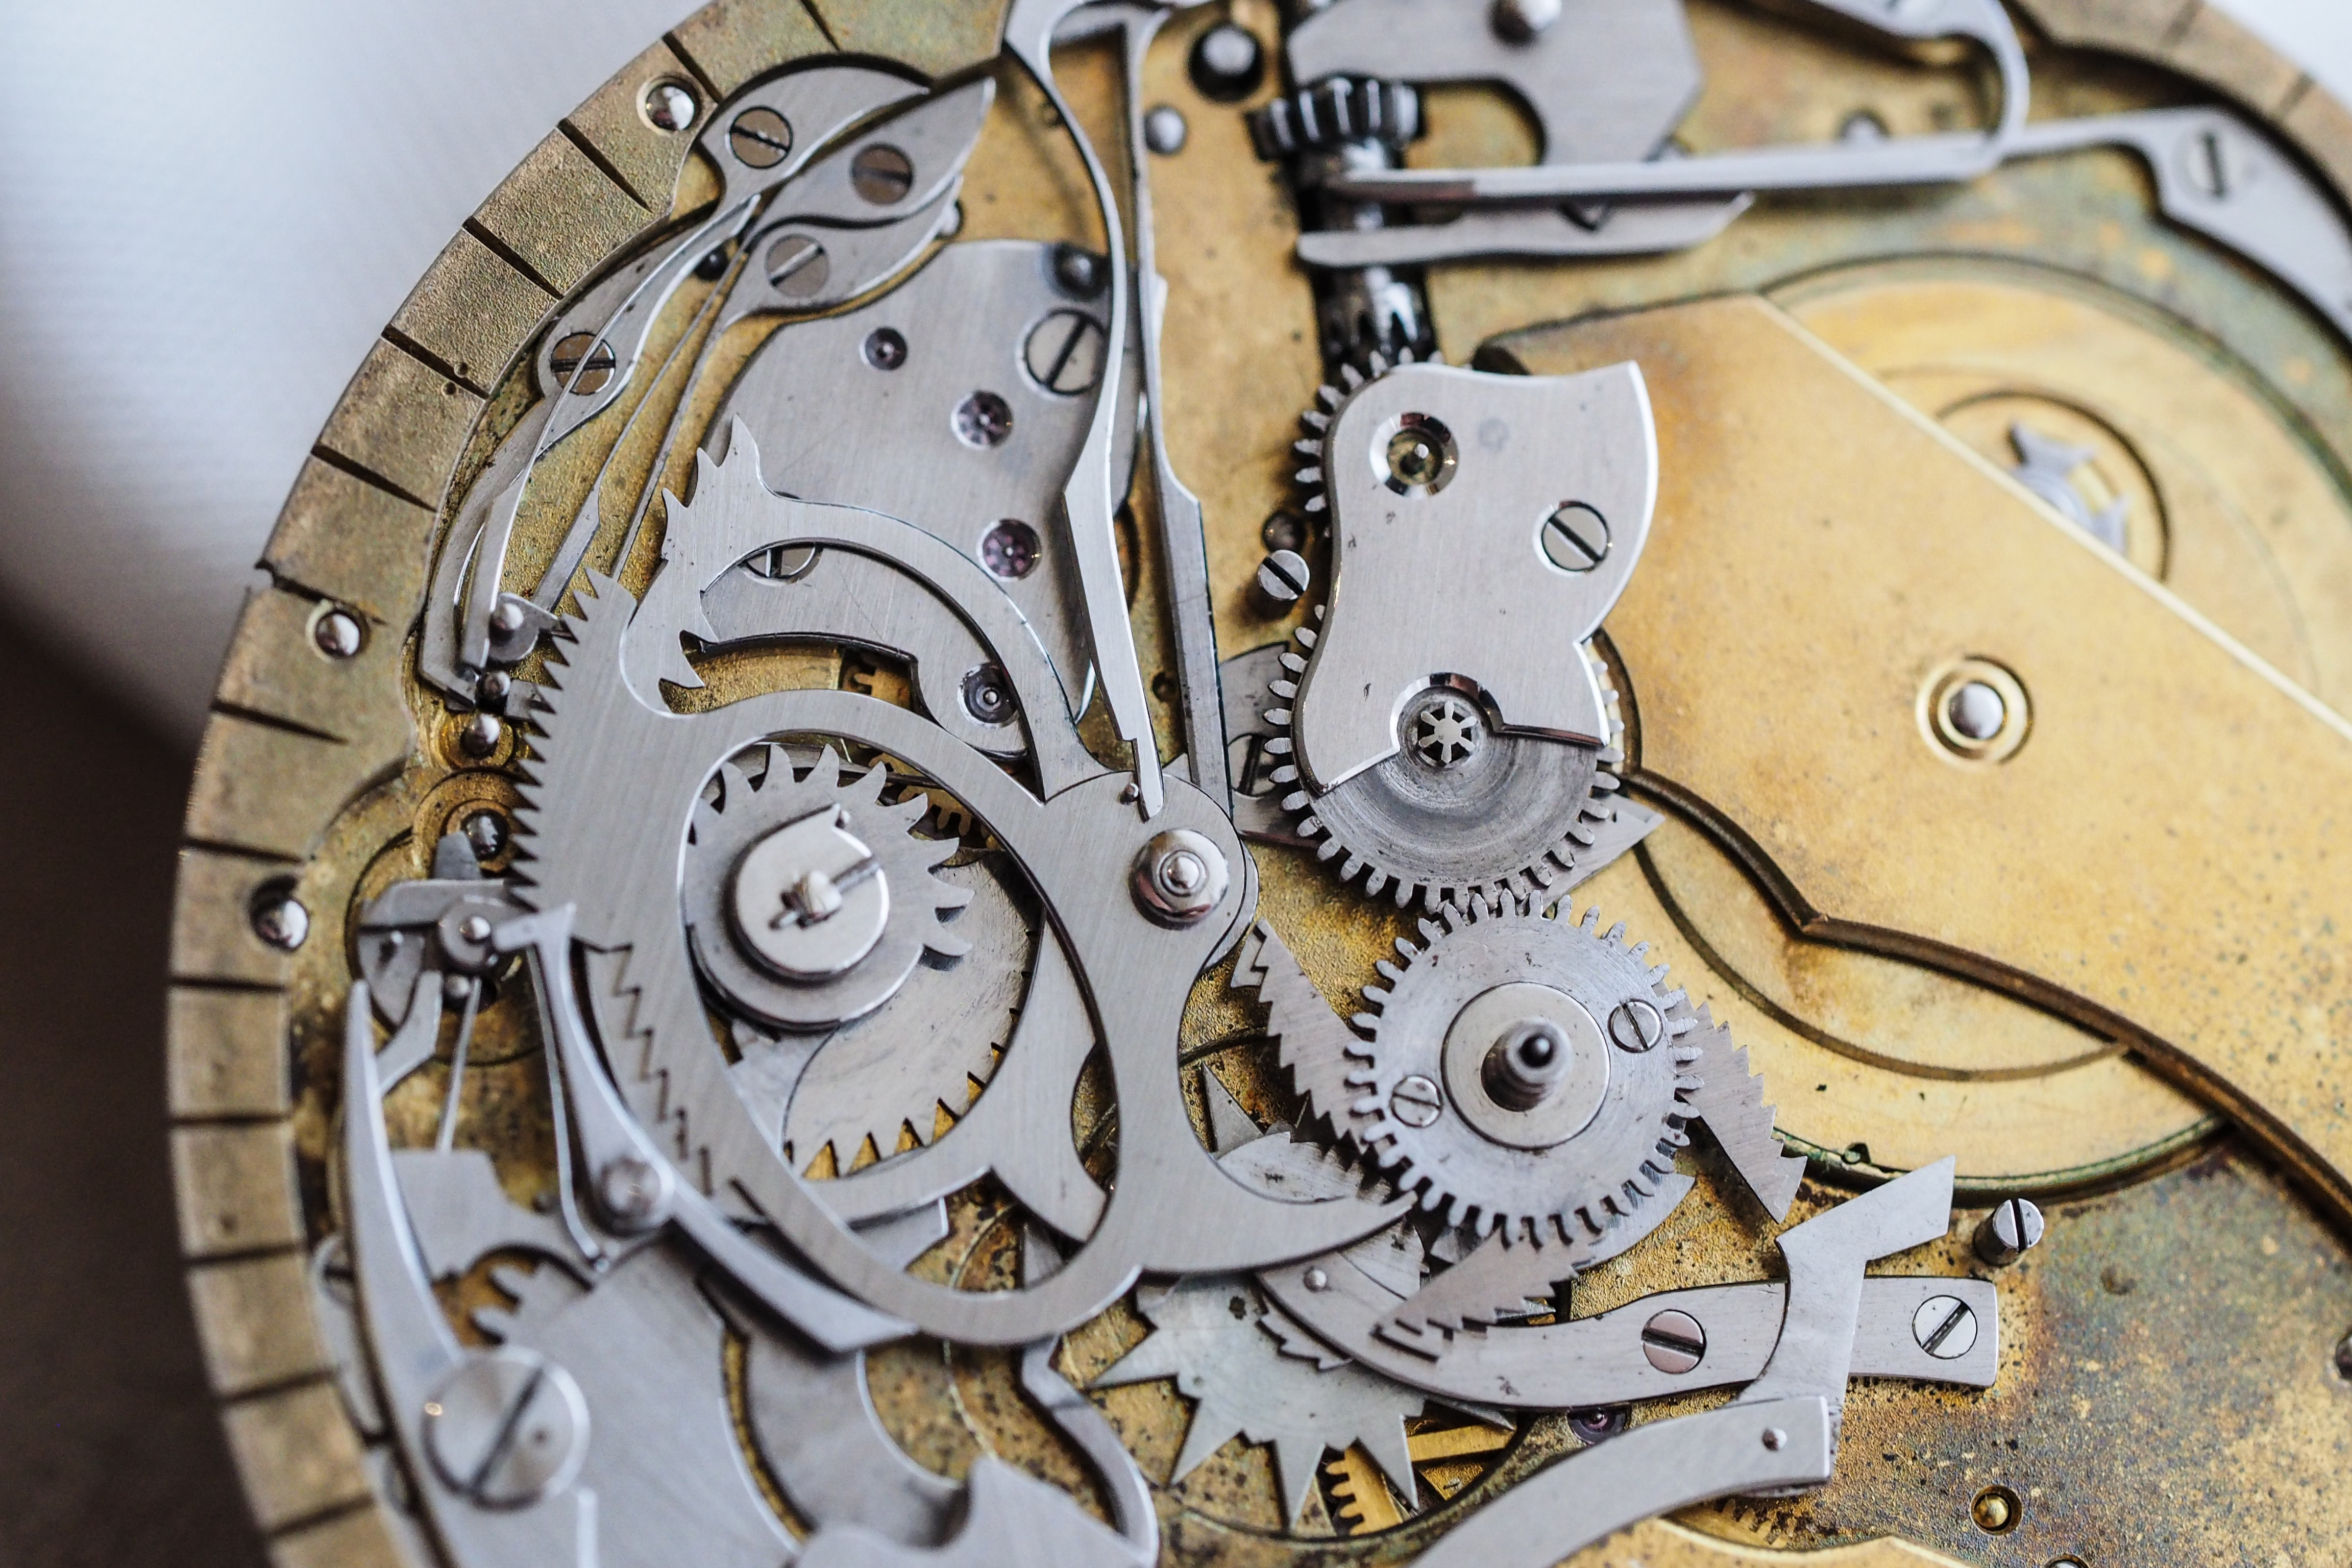 Jaeger LeCoultre Ultra Thin Chronograph Repeater 19 RMCCVEP repeater mainspring and setting mechanism  Inside The Manufacture: With Jaeger-LeCoultre In Switzerland, Pt. 4: A 100-Year-Old Ultra Thin Mechanical Masterpiece P4061688